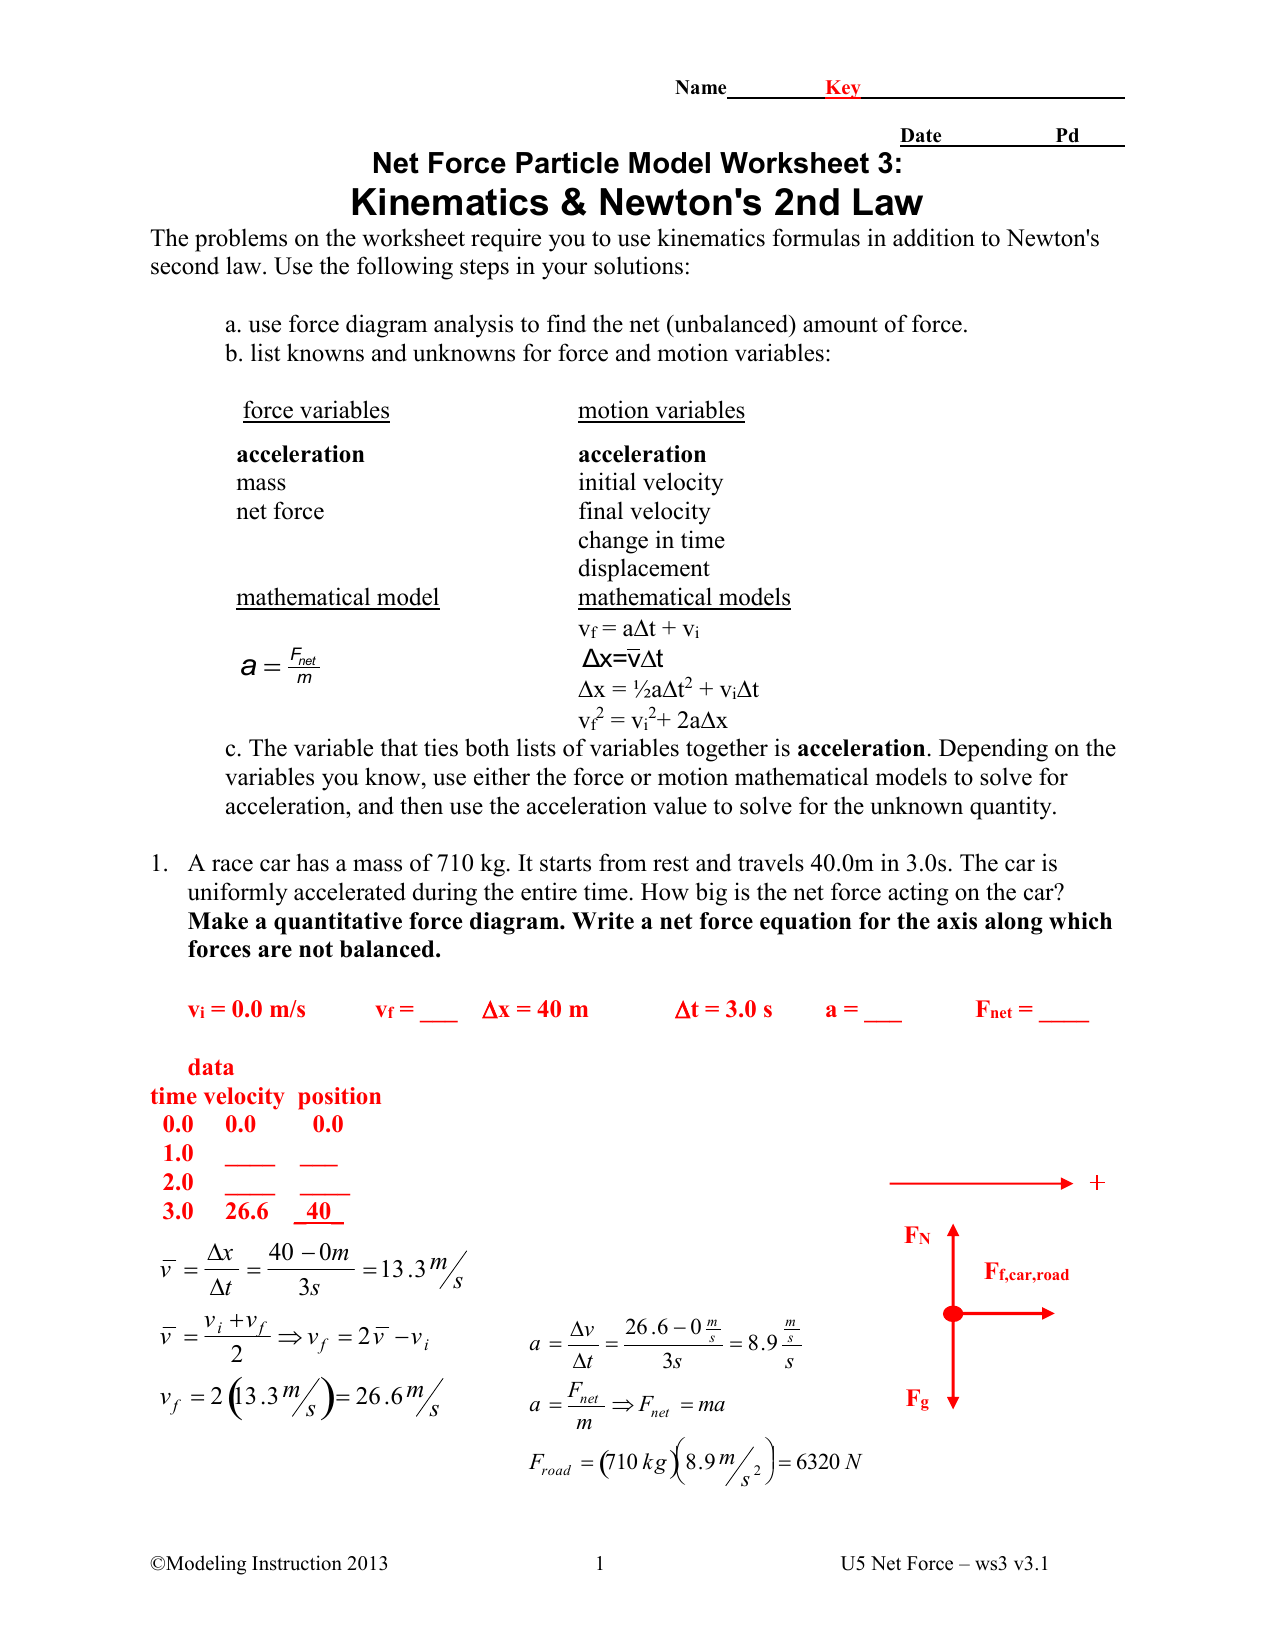 Worksheet 4 1 Newton S 2nd Law Answer Key